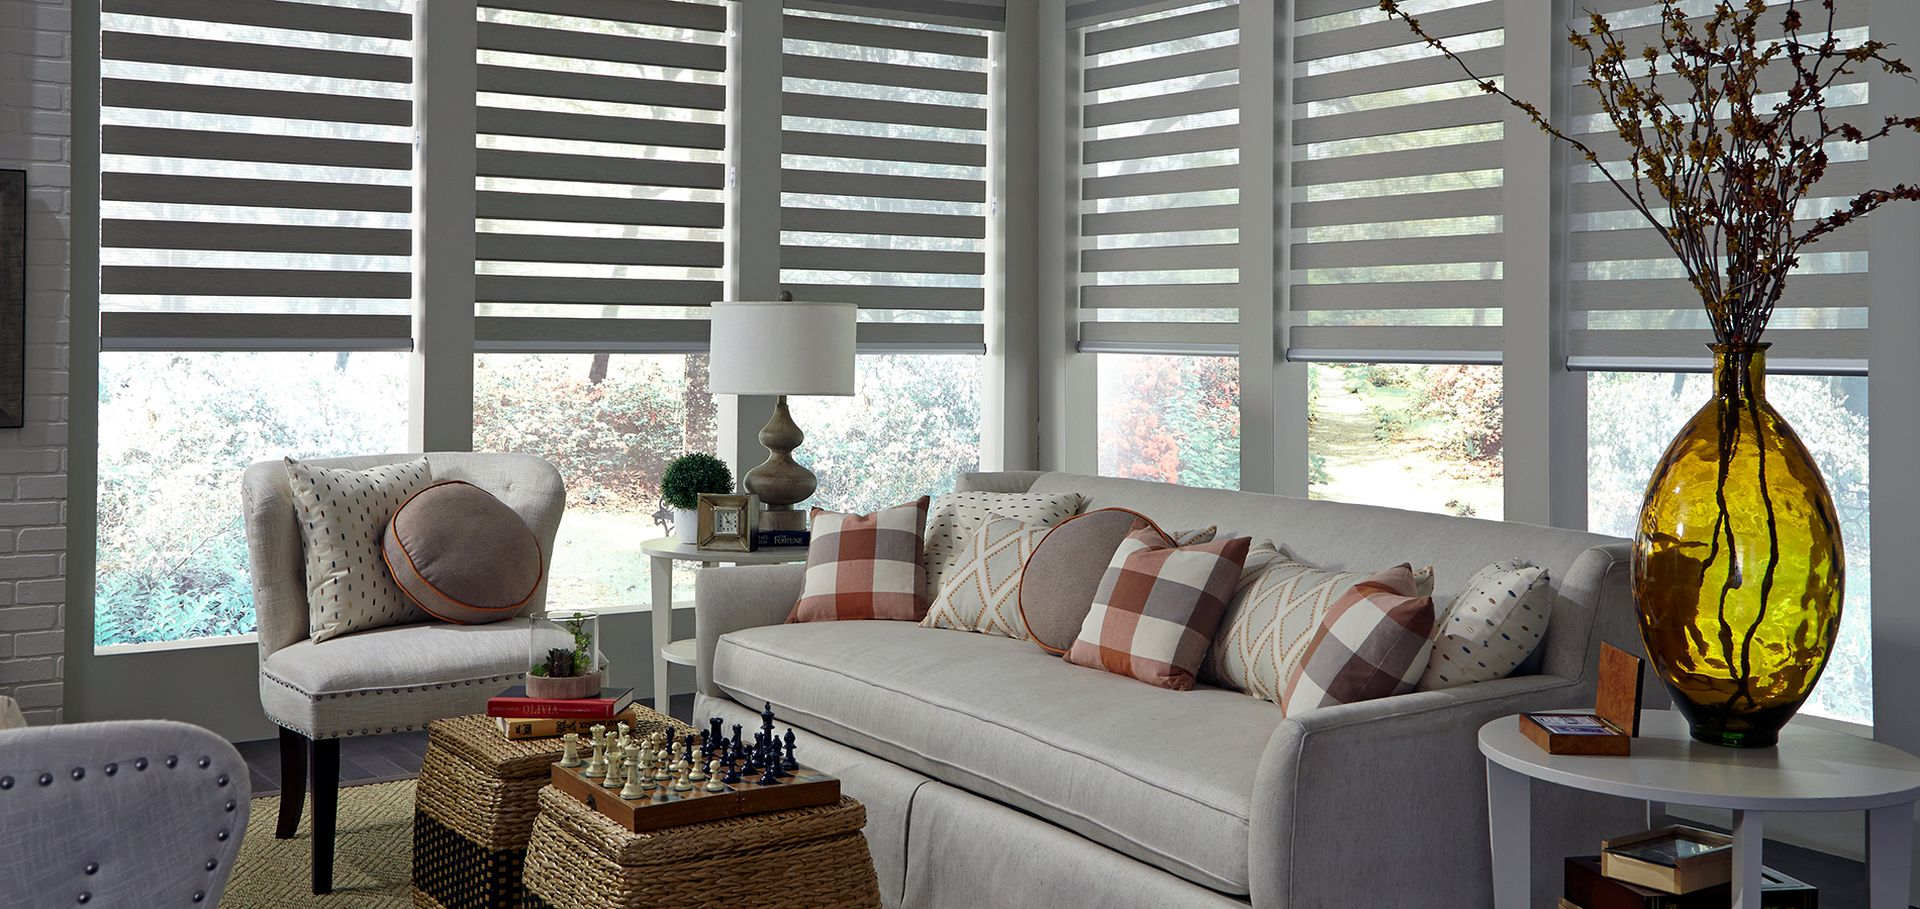 Remote Control Blinds: Bring Your Bedroom Into The 21st Century | Stoneside